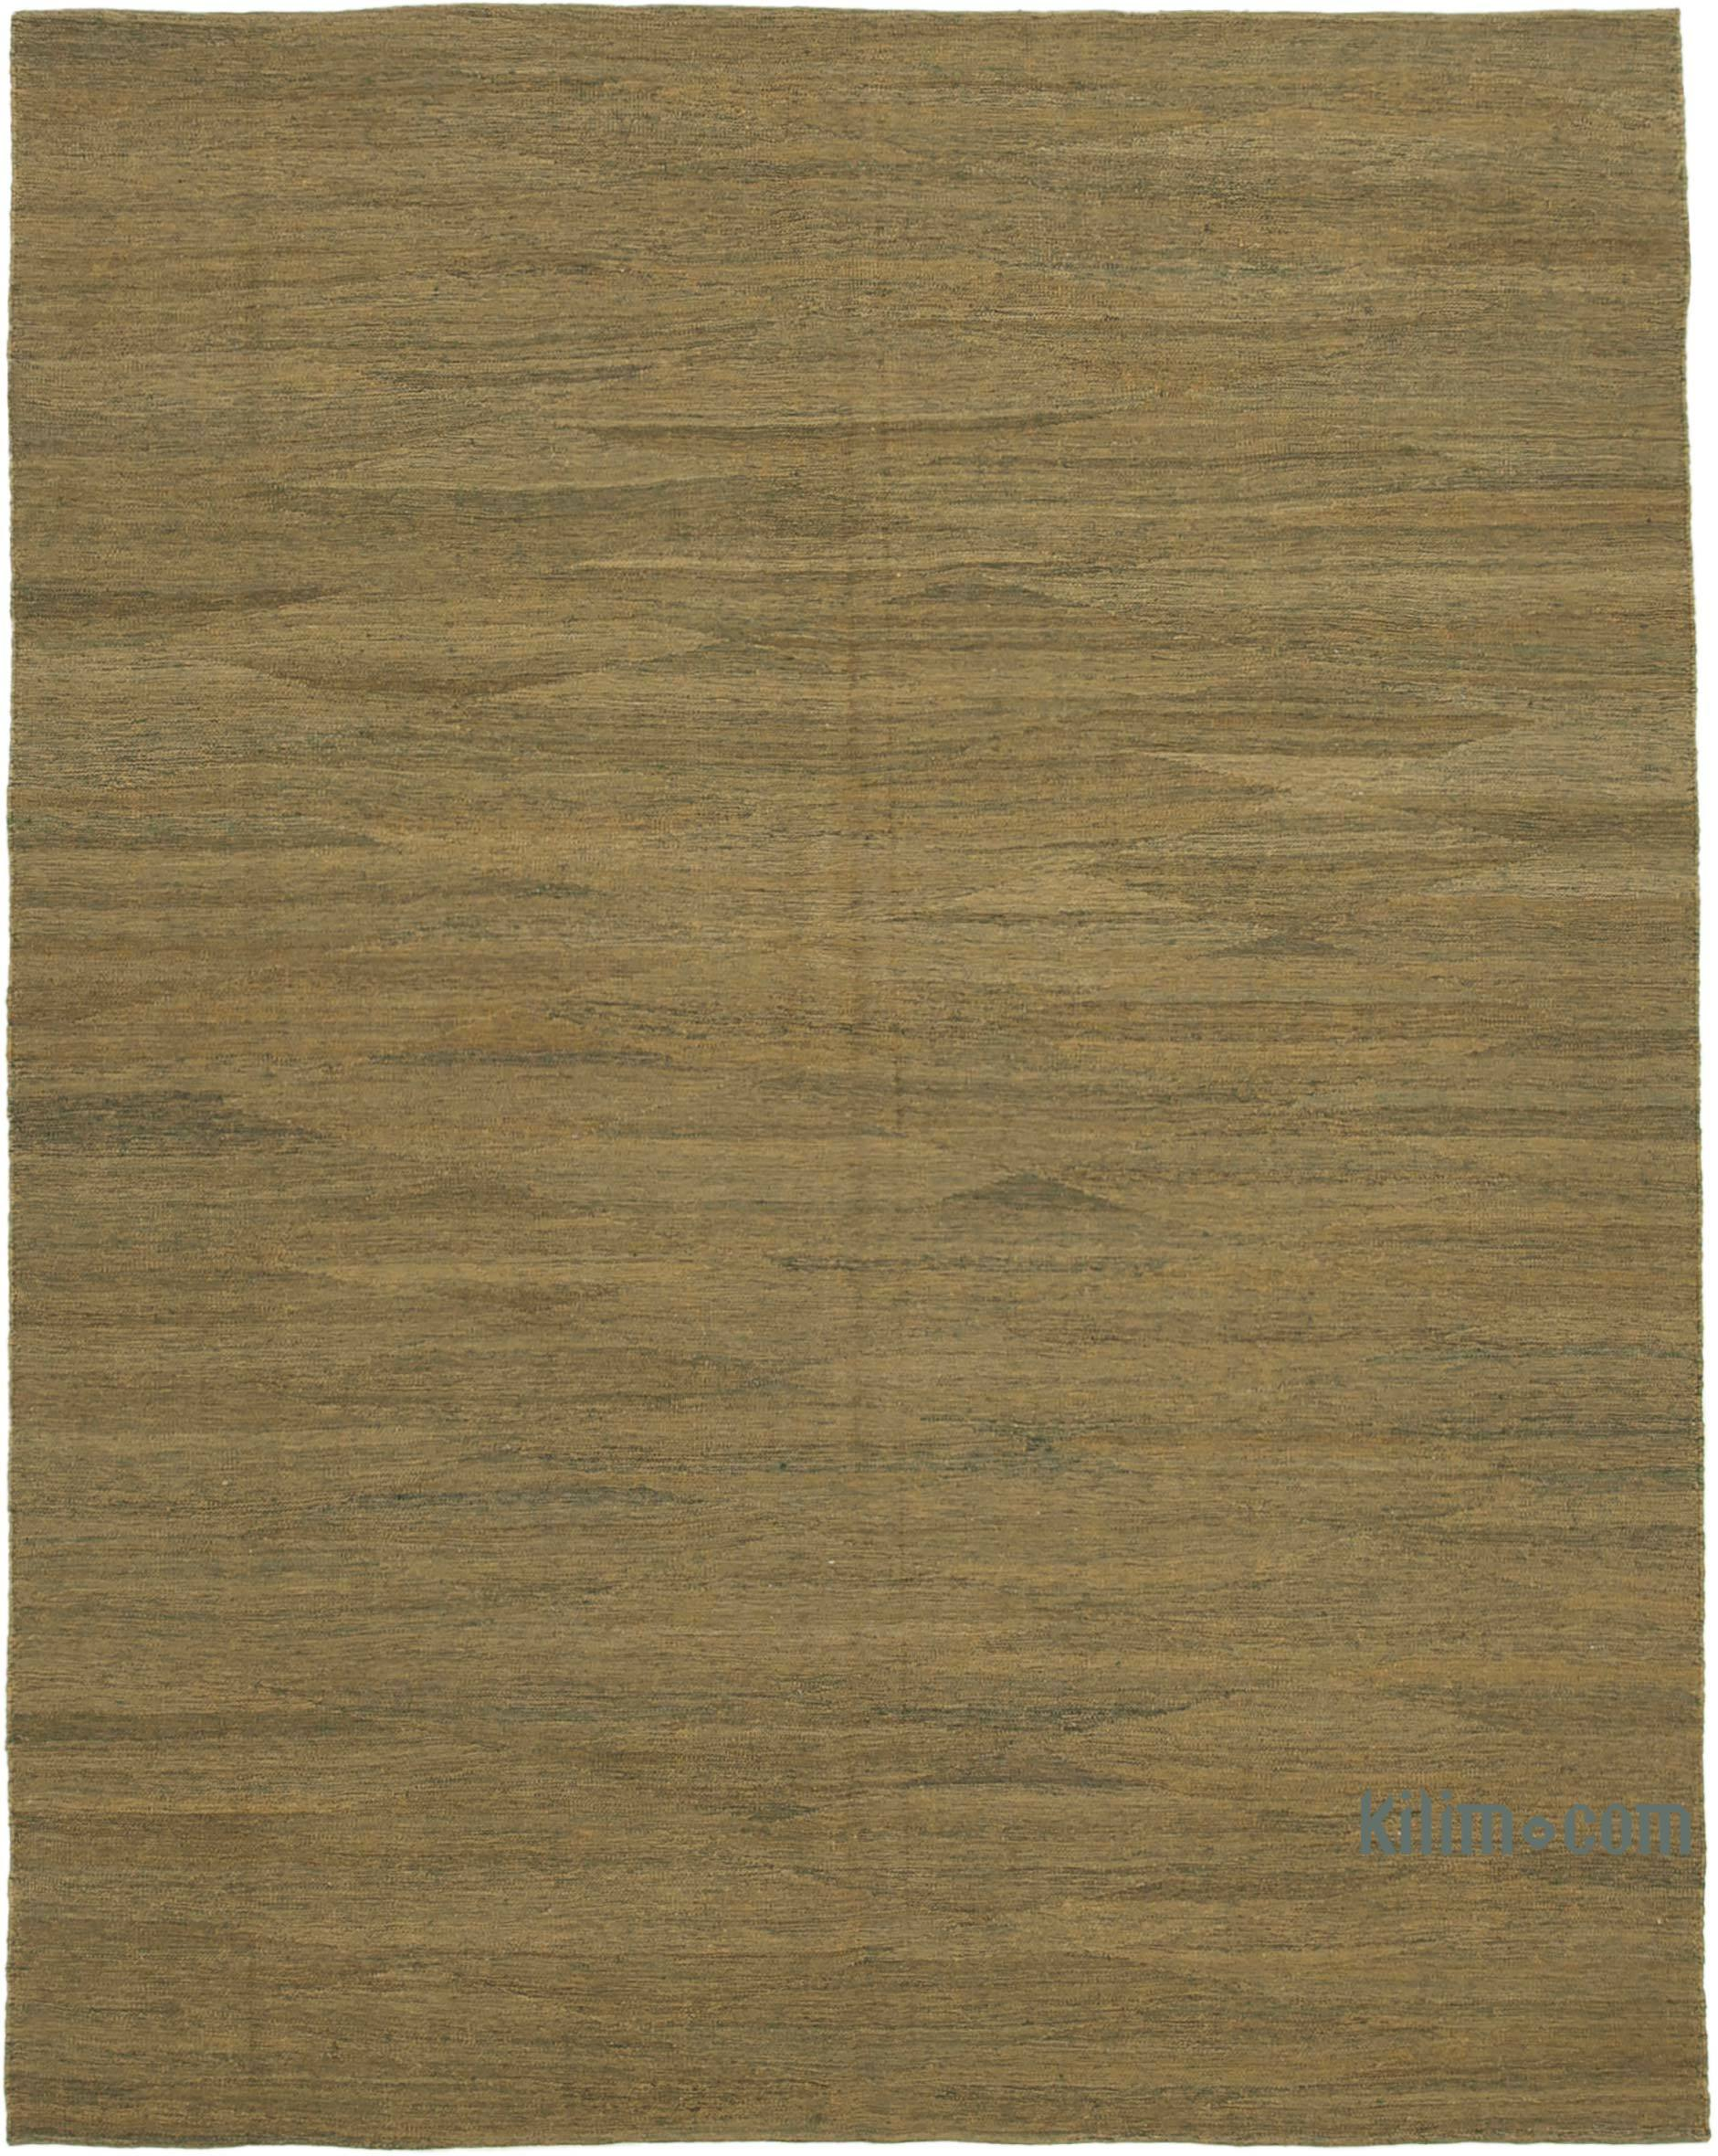 Green New Contemporary Kilim Rug Z Collection 8 3 X 10 6 99 In X 126 In